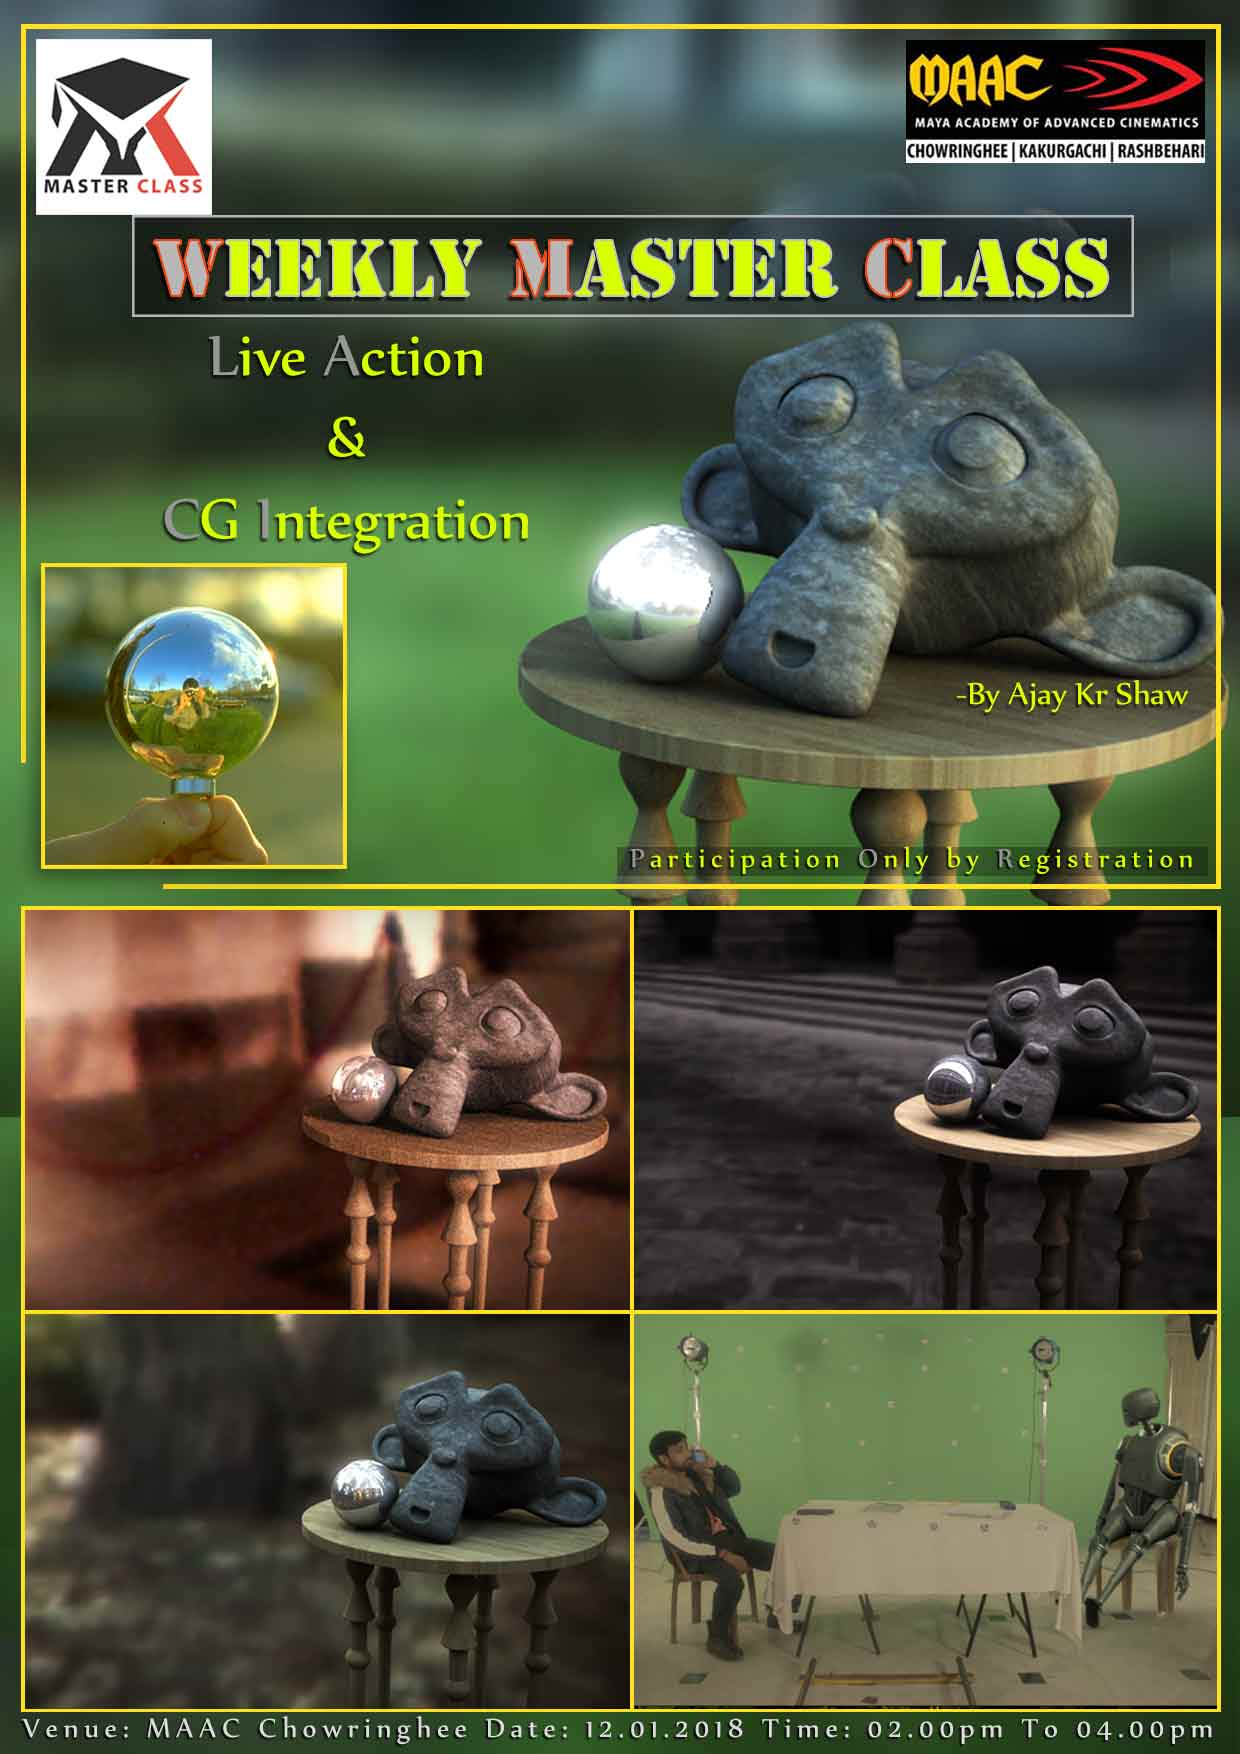 Weekly Master Class on Live Action & CG Integration